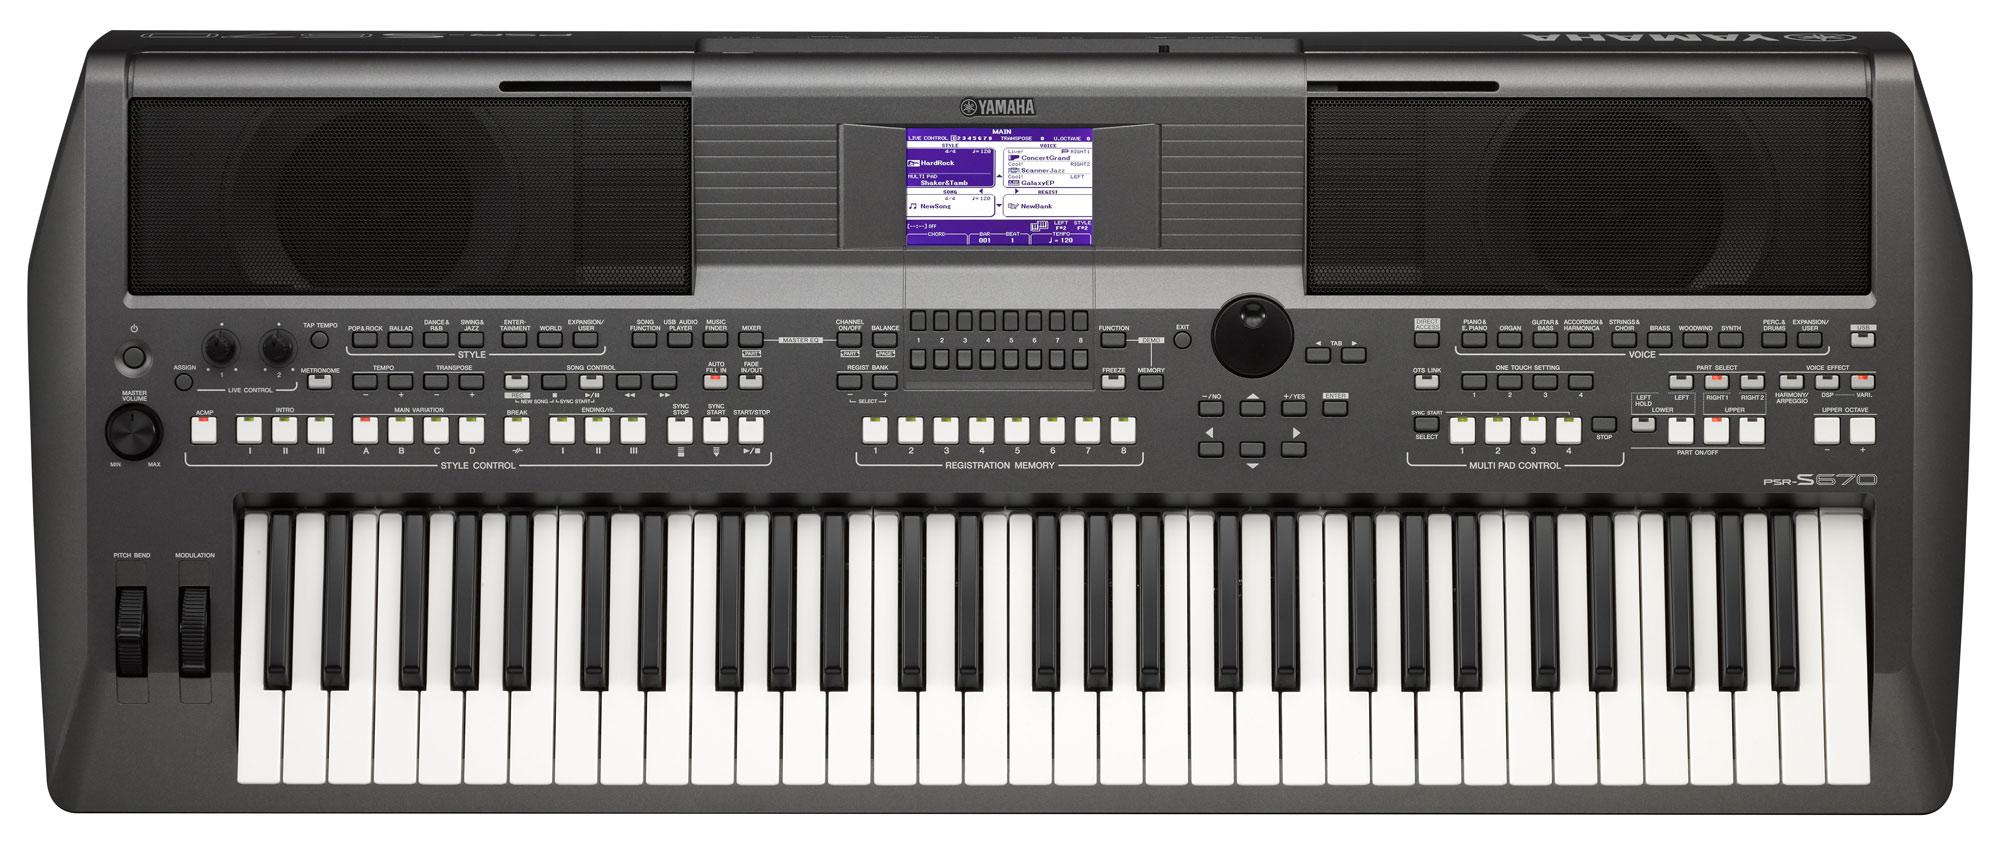 yamaha psr s670 keyboard. Black Bedroom Furniture Sets. Home Design Ideas